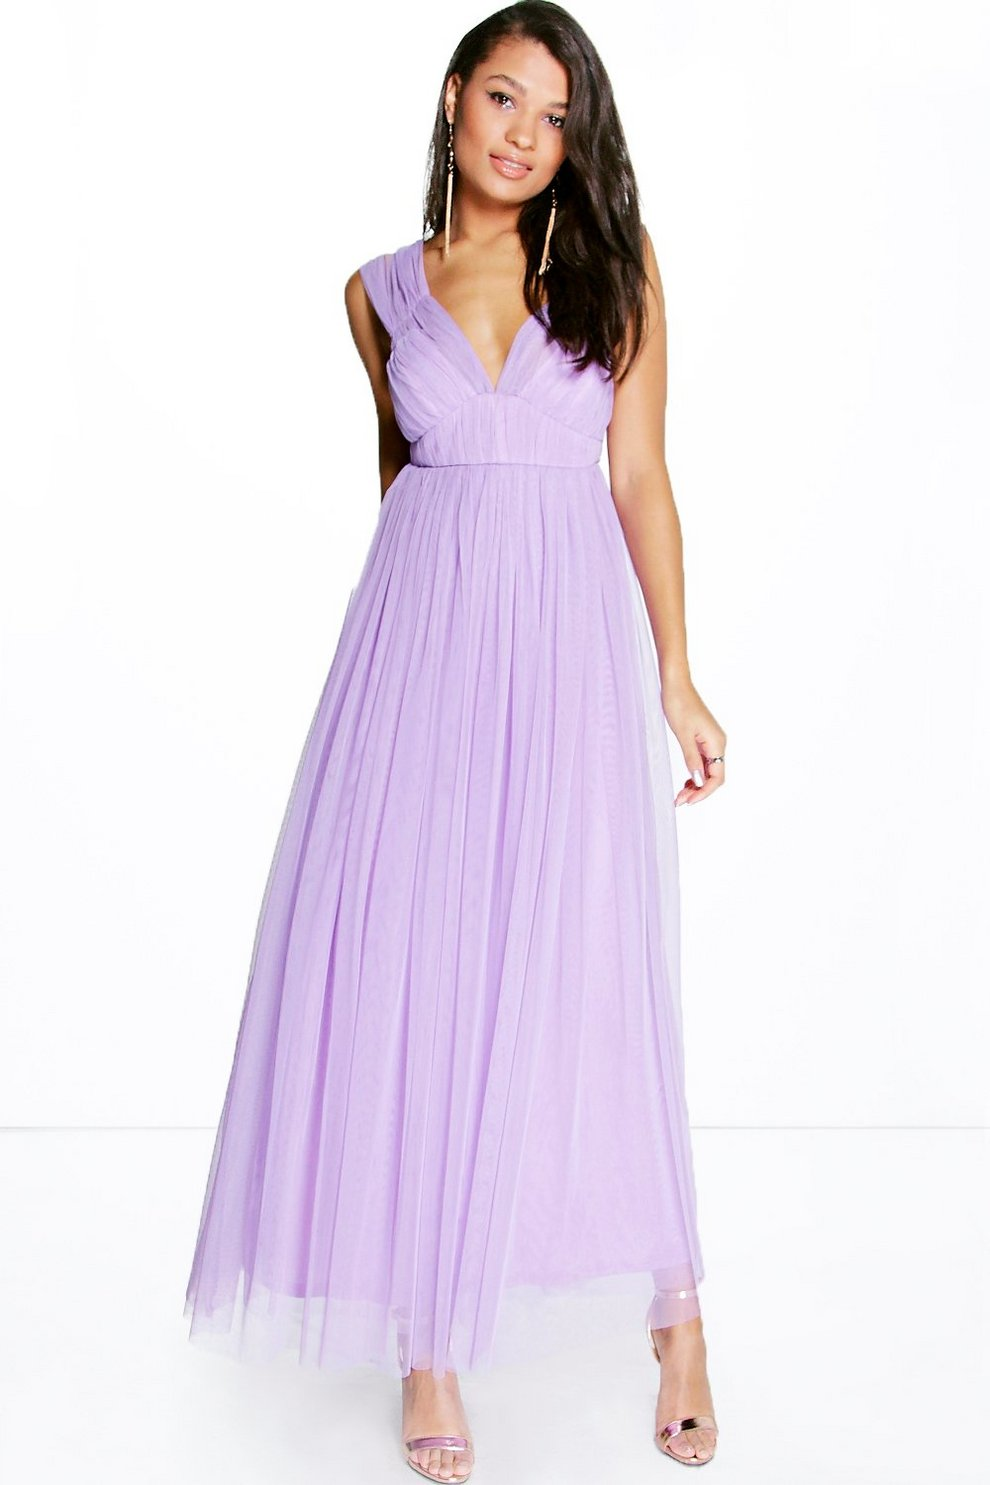 91f6596bf4d2c Boutique Anya Seam Detail Tulle Maxi Dress | Boohoo